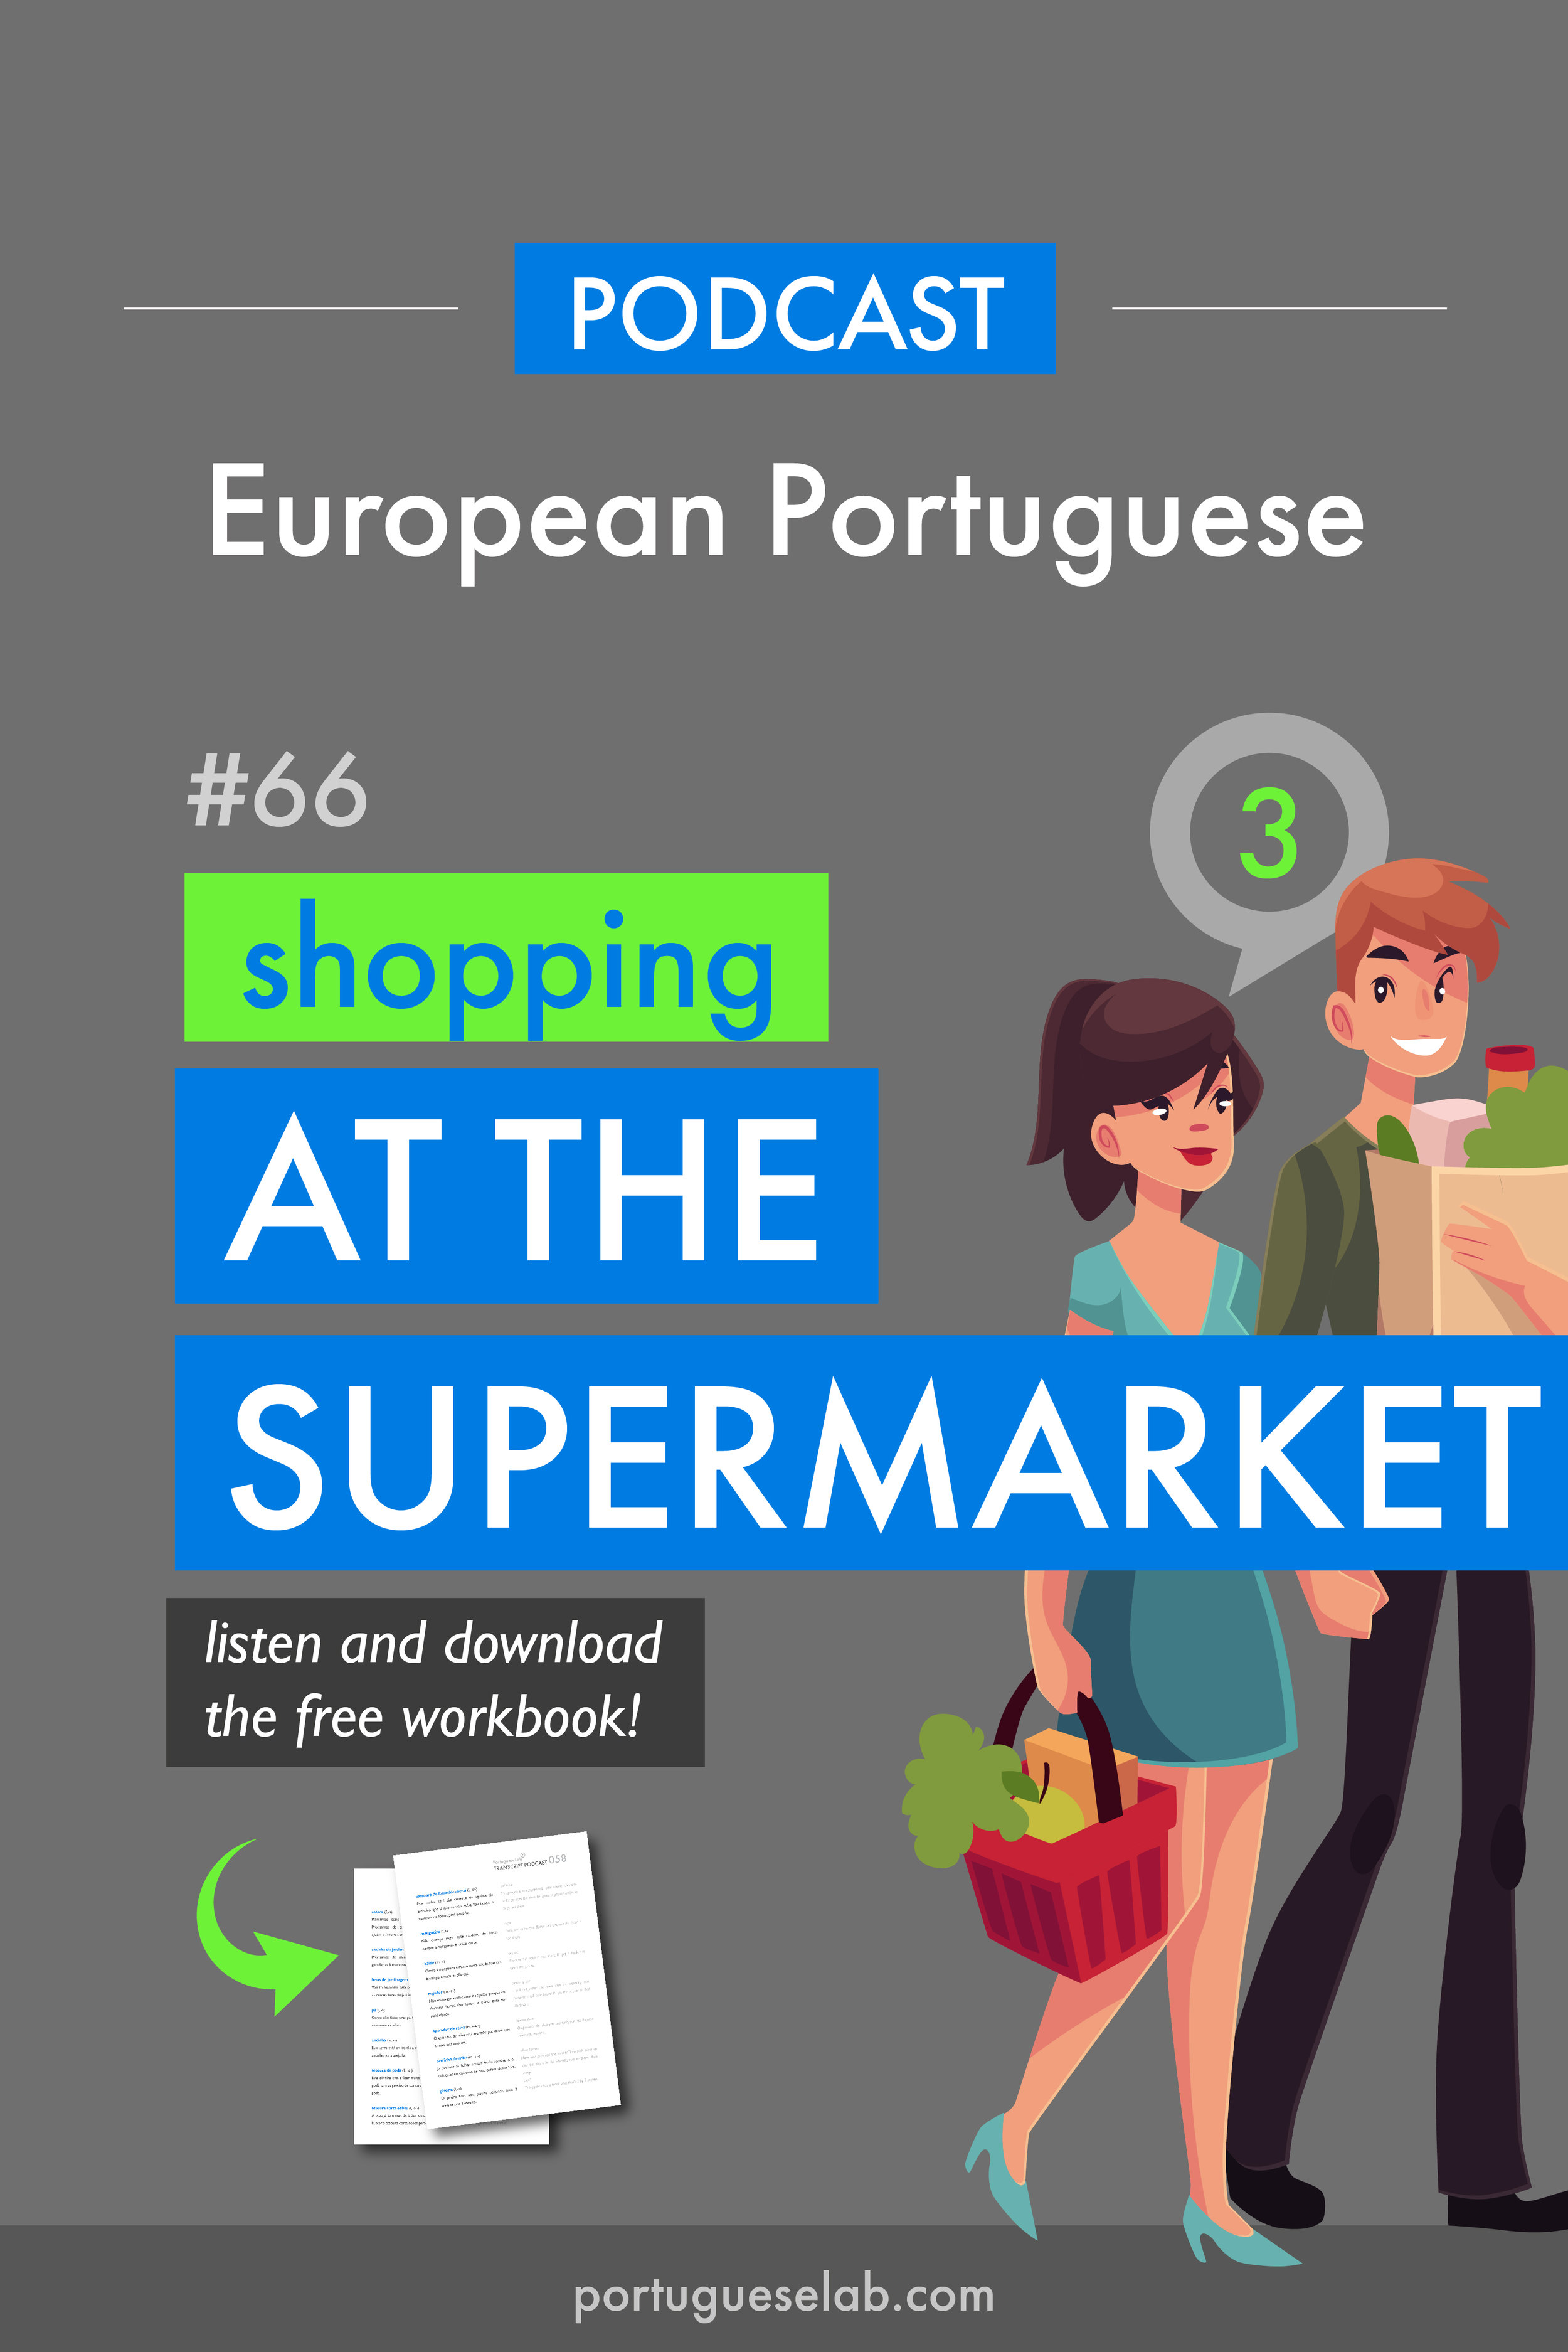 Portuguese Lab Podcast - European Portuguese - 66 - Shopping at the supermarket.jpg